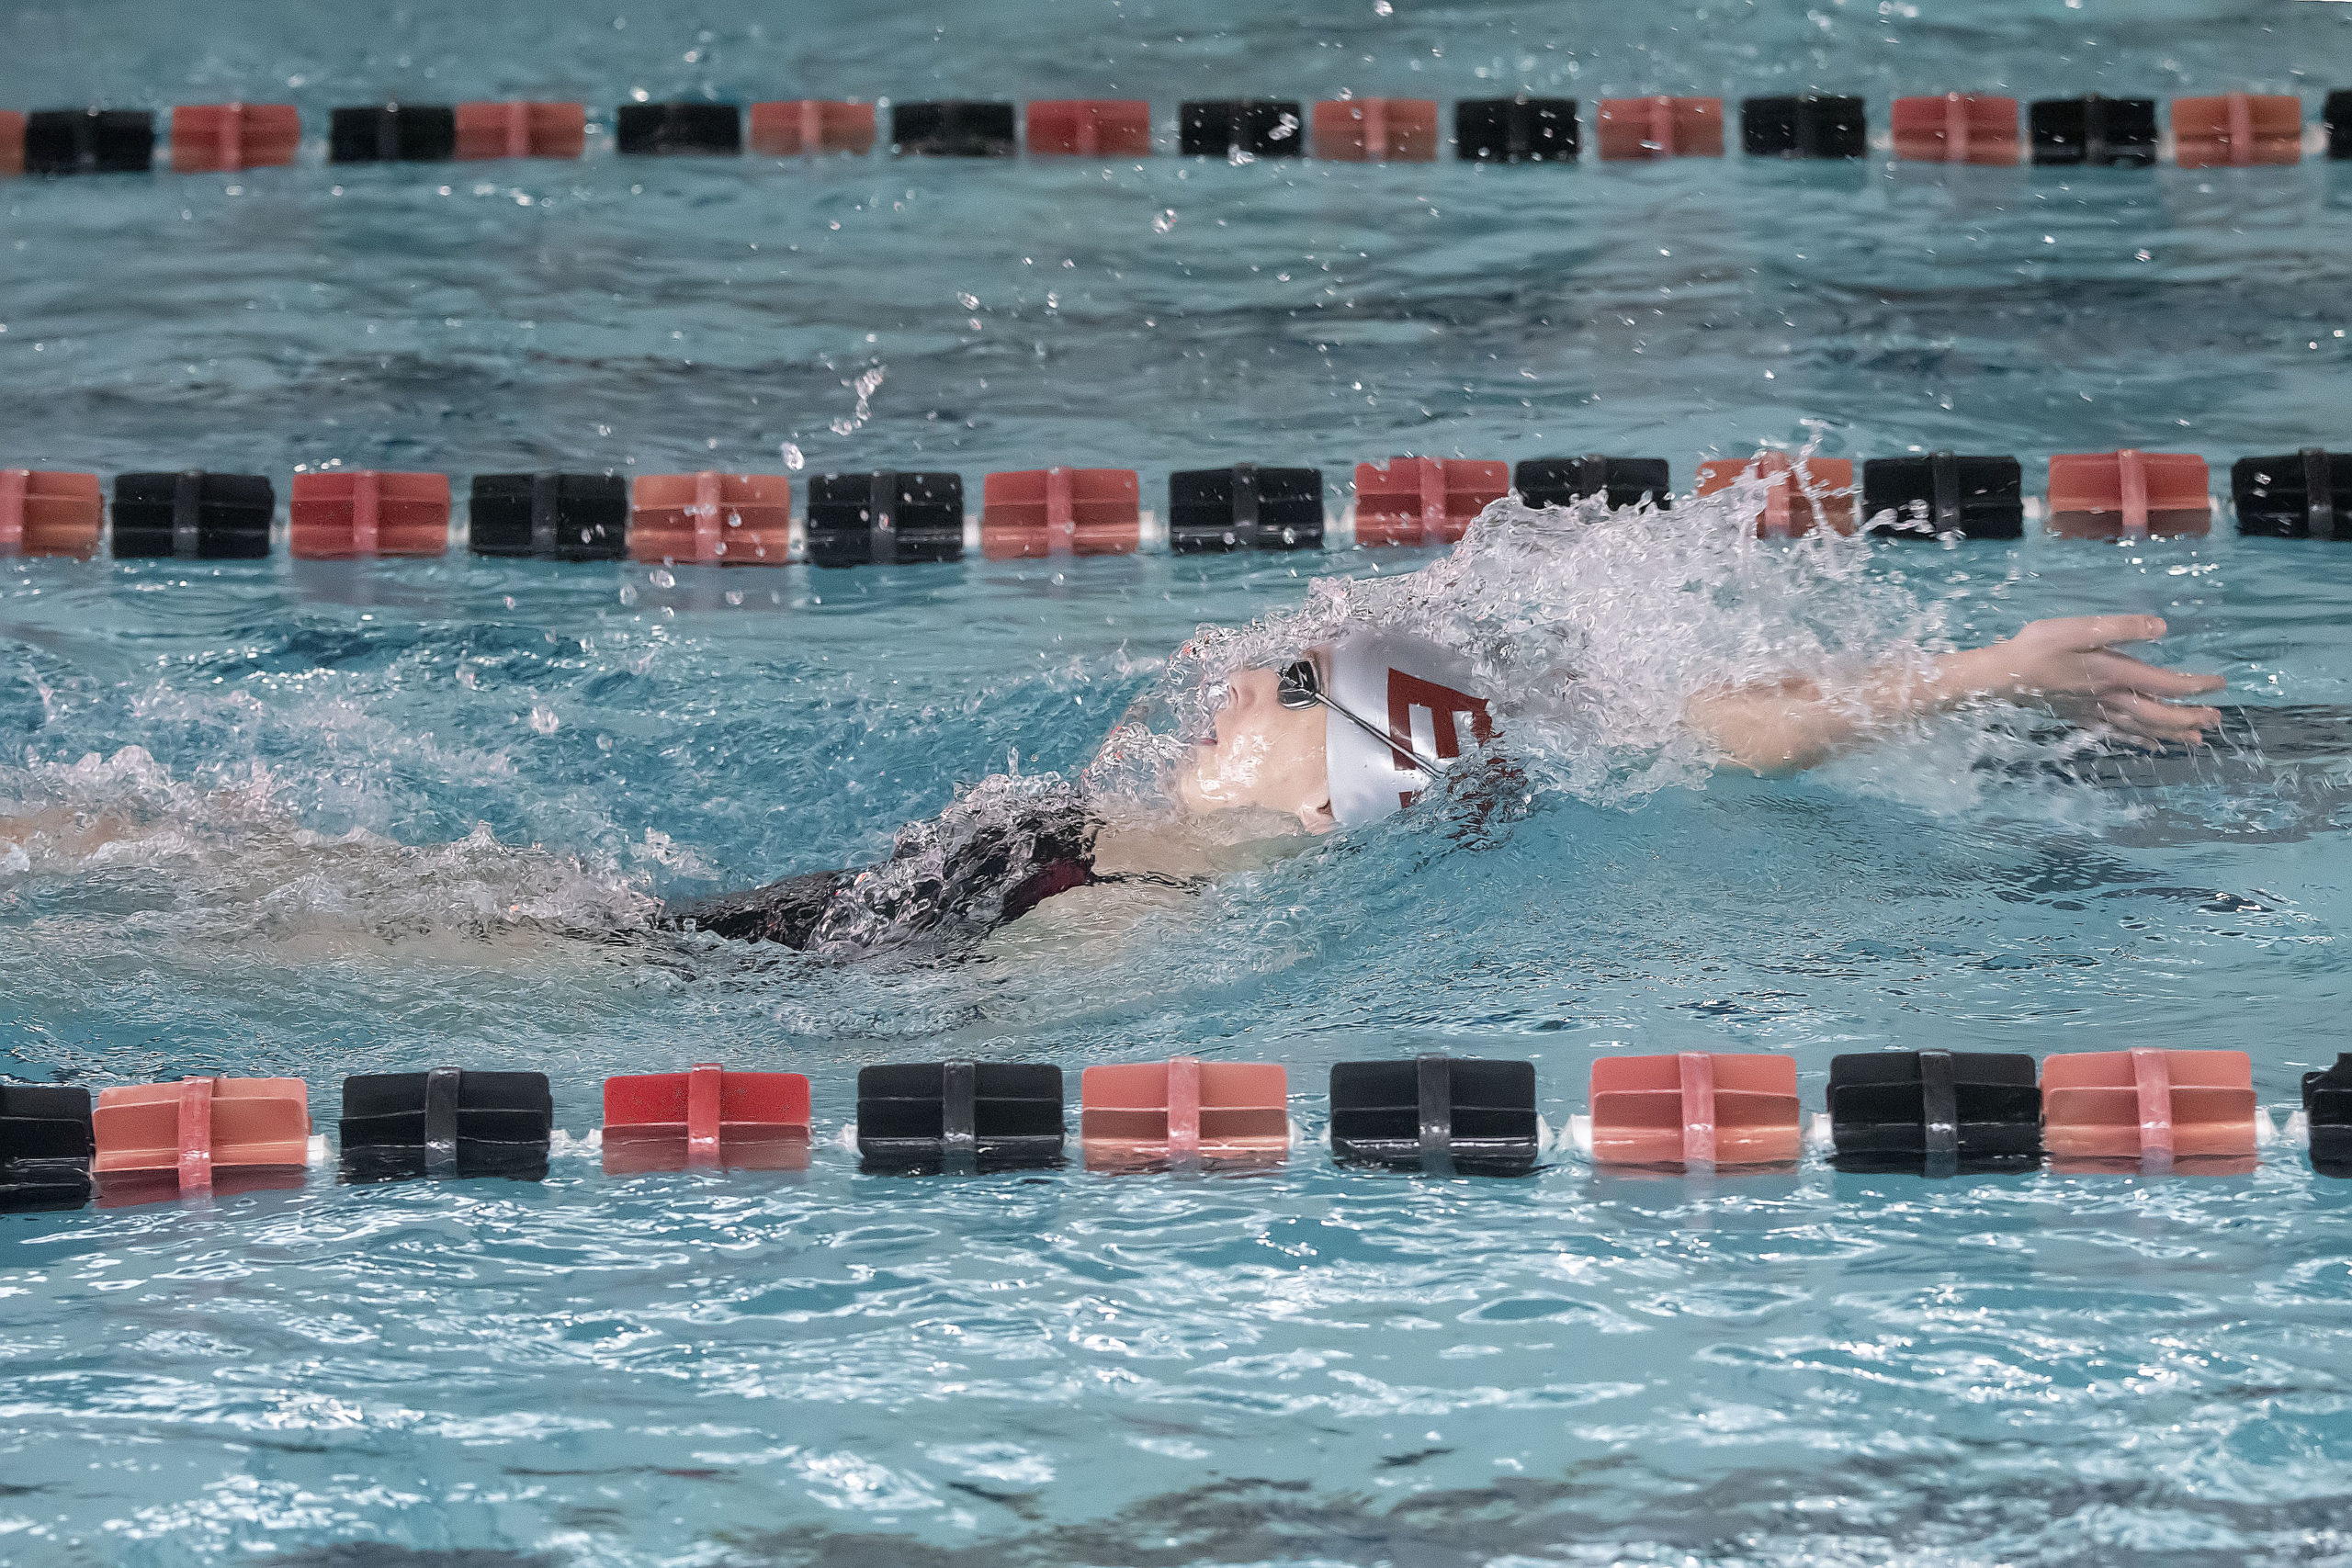 East Hampton's Jane Brierley competes in the 200-meter individual medley at the League III Championships against Lindenhurst on Friday.